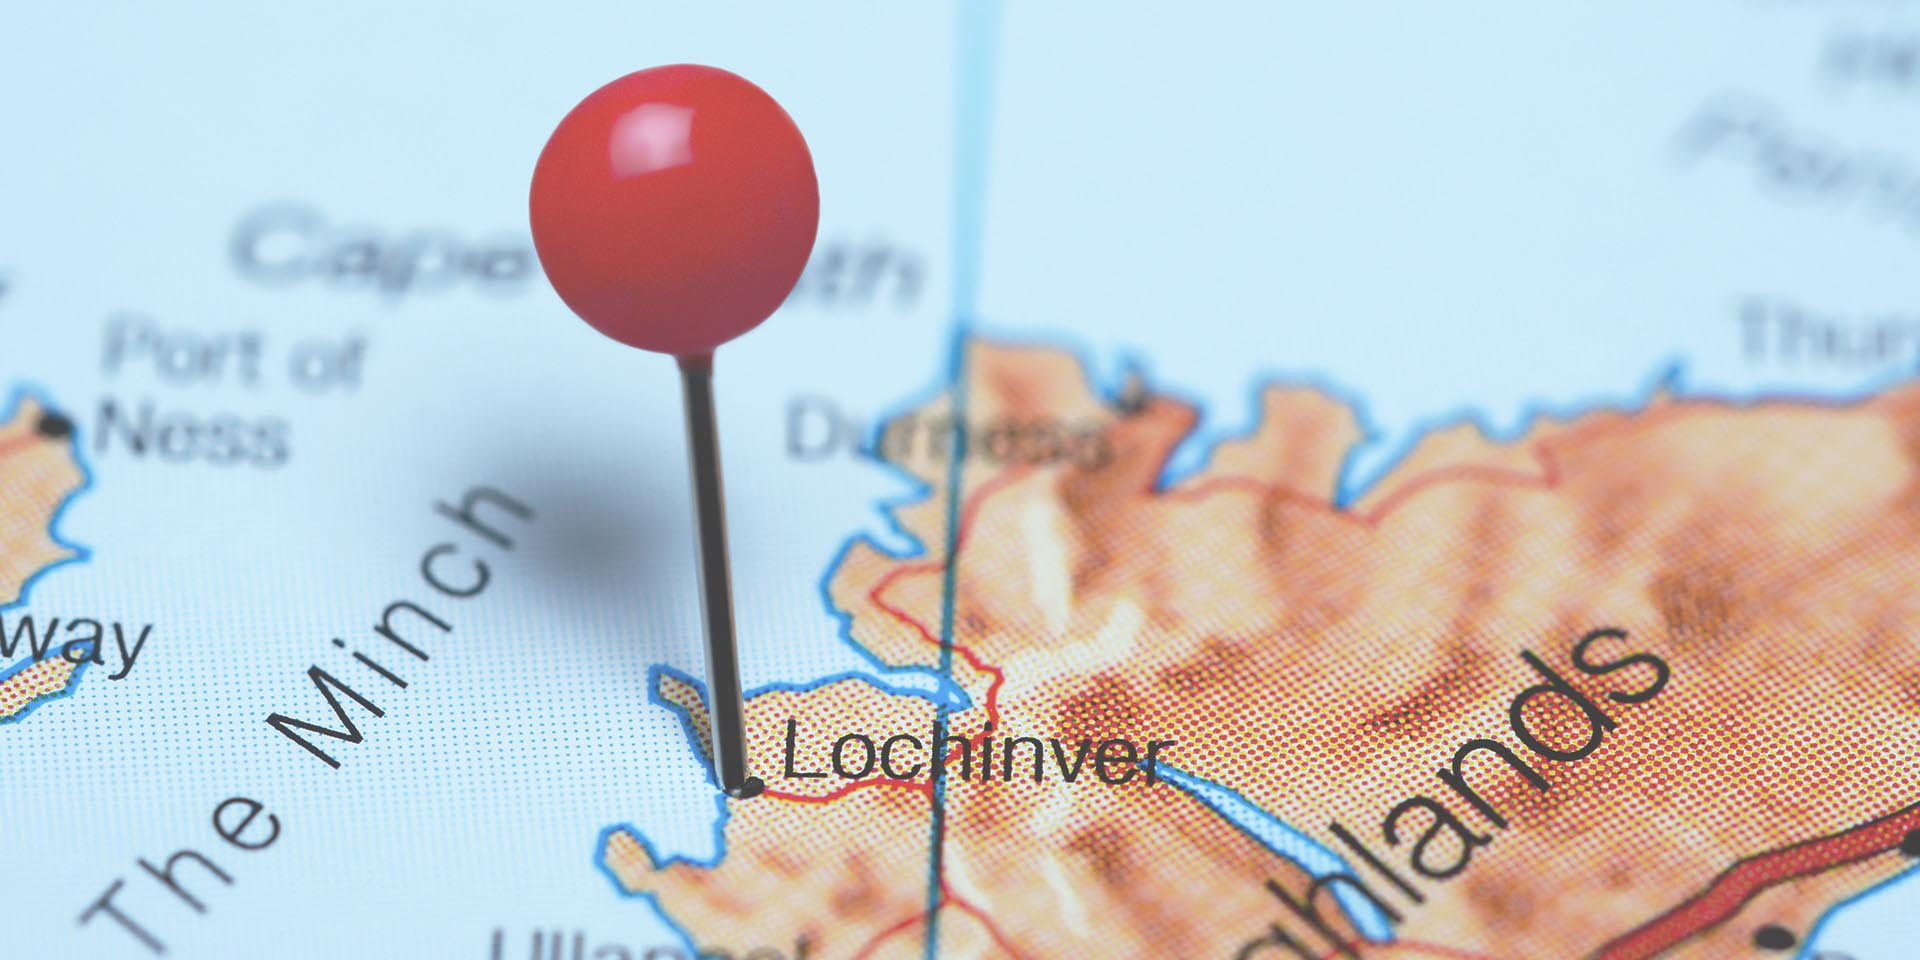 Lochinver pinned on a map of Scotland